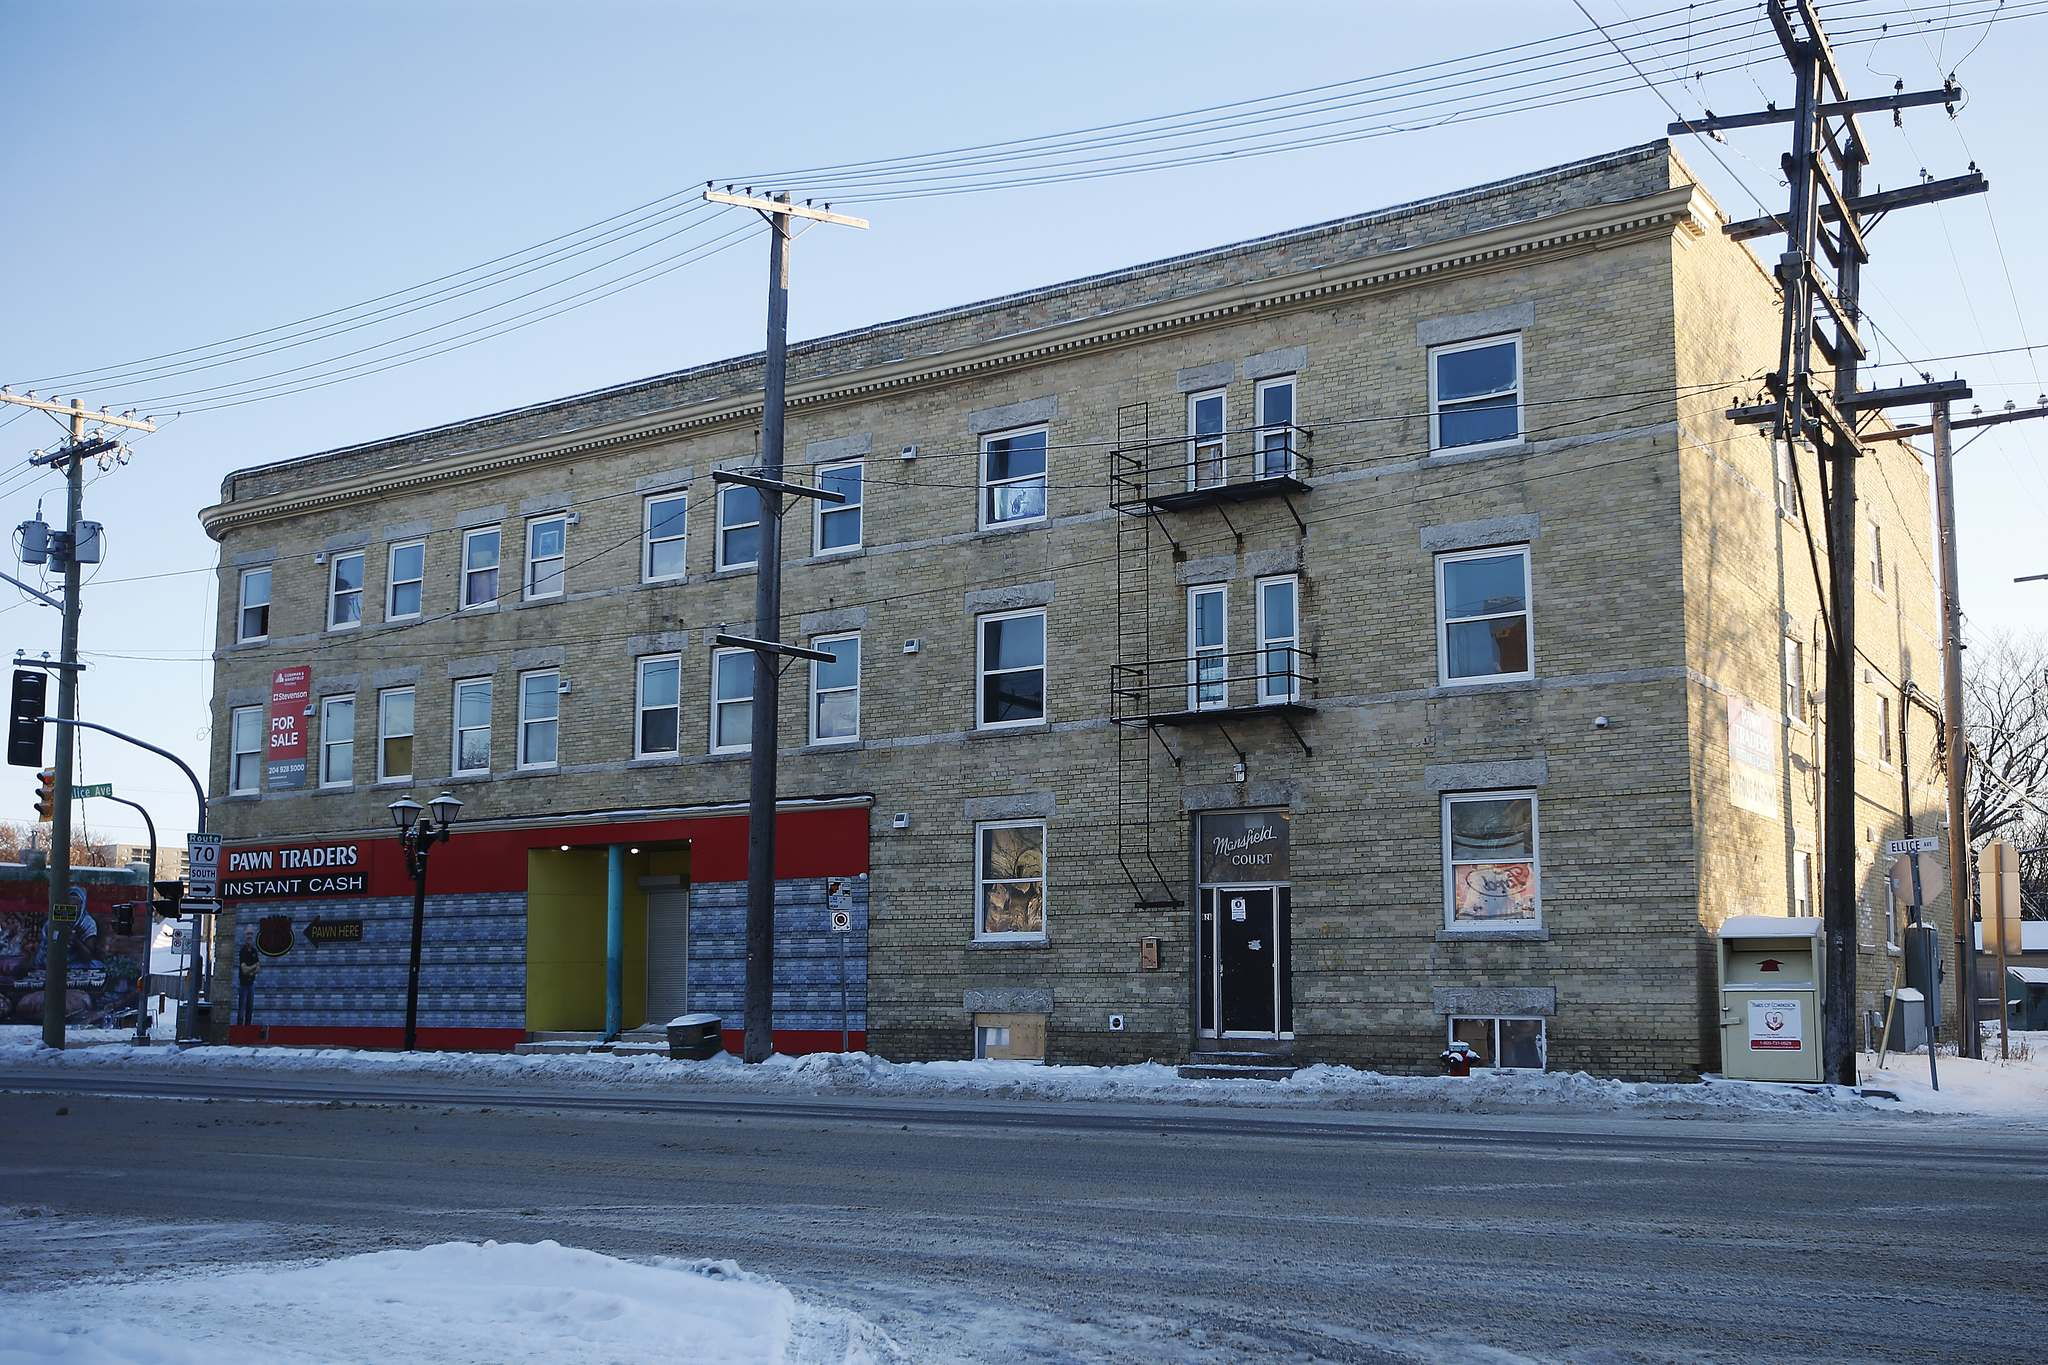 JOHN WOODS / WINNIPEG FREE PRESS</p><p>The apartment block at 626 Ellice Ave. has been plagued with fires and safety issues.</p>